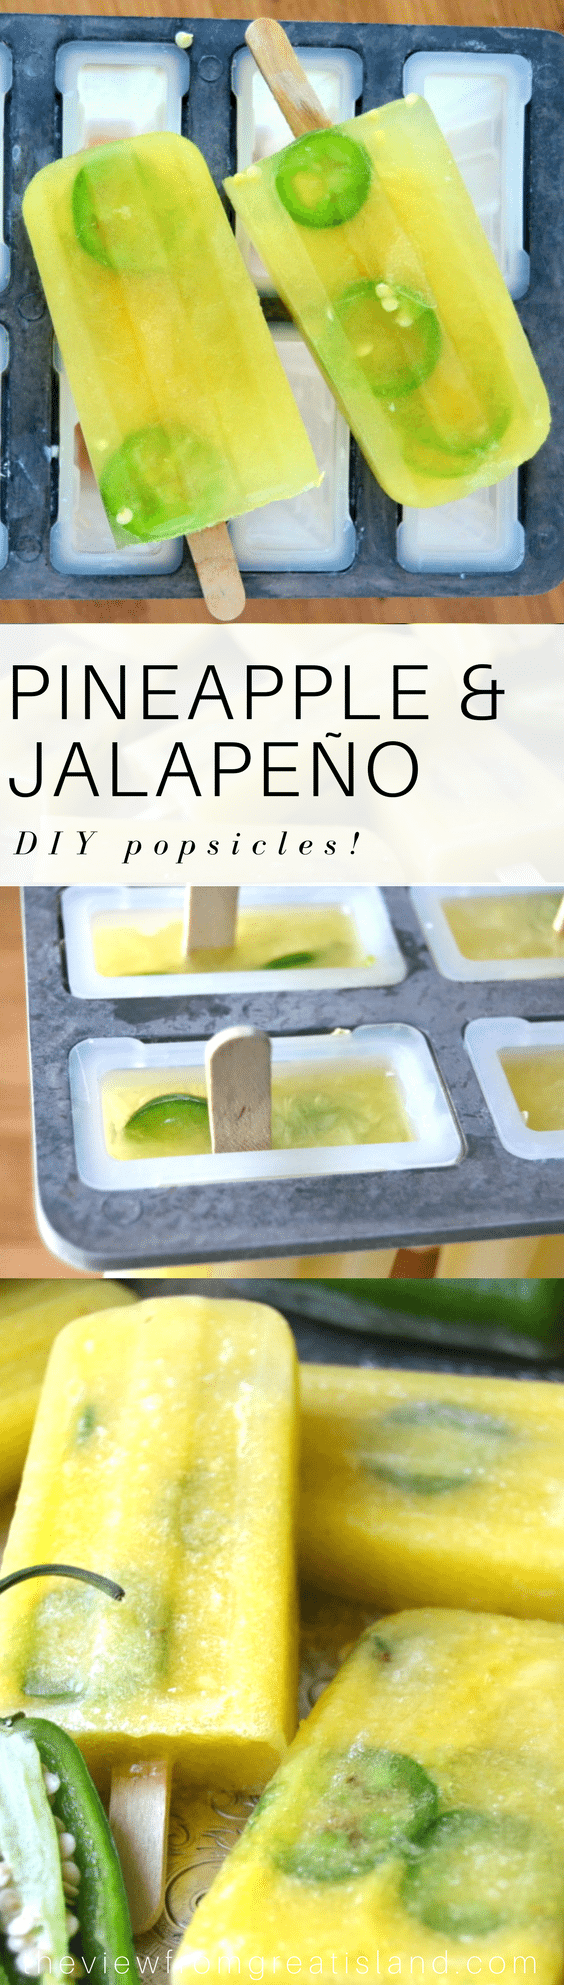 These Pineapple Jalapeño popsicles unique and delicious!  The  icy cold - sweetness of the pineapple hits your tongue at the same moment the heat of the jalapeño kicks in. #popsicles #diypopsicles #jalapeno #savorypopsicle #pineapple #summer #frozendessert #dessert